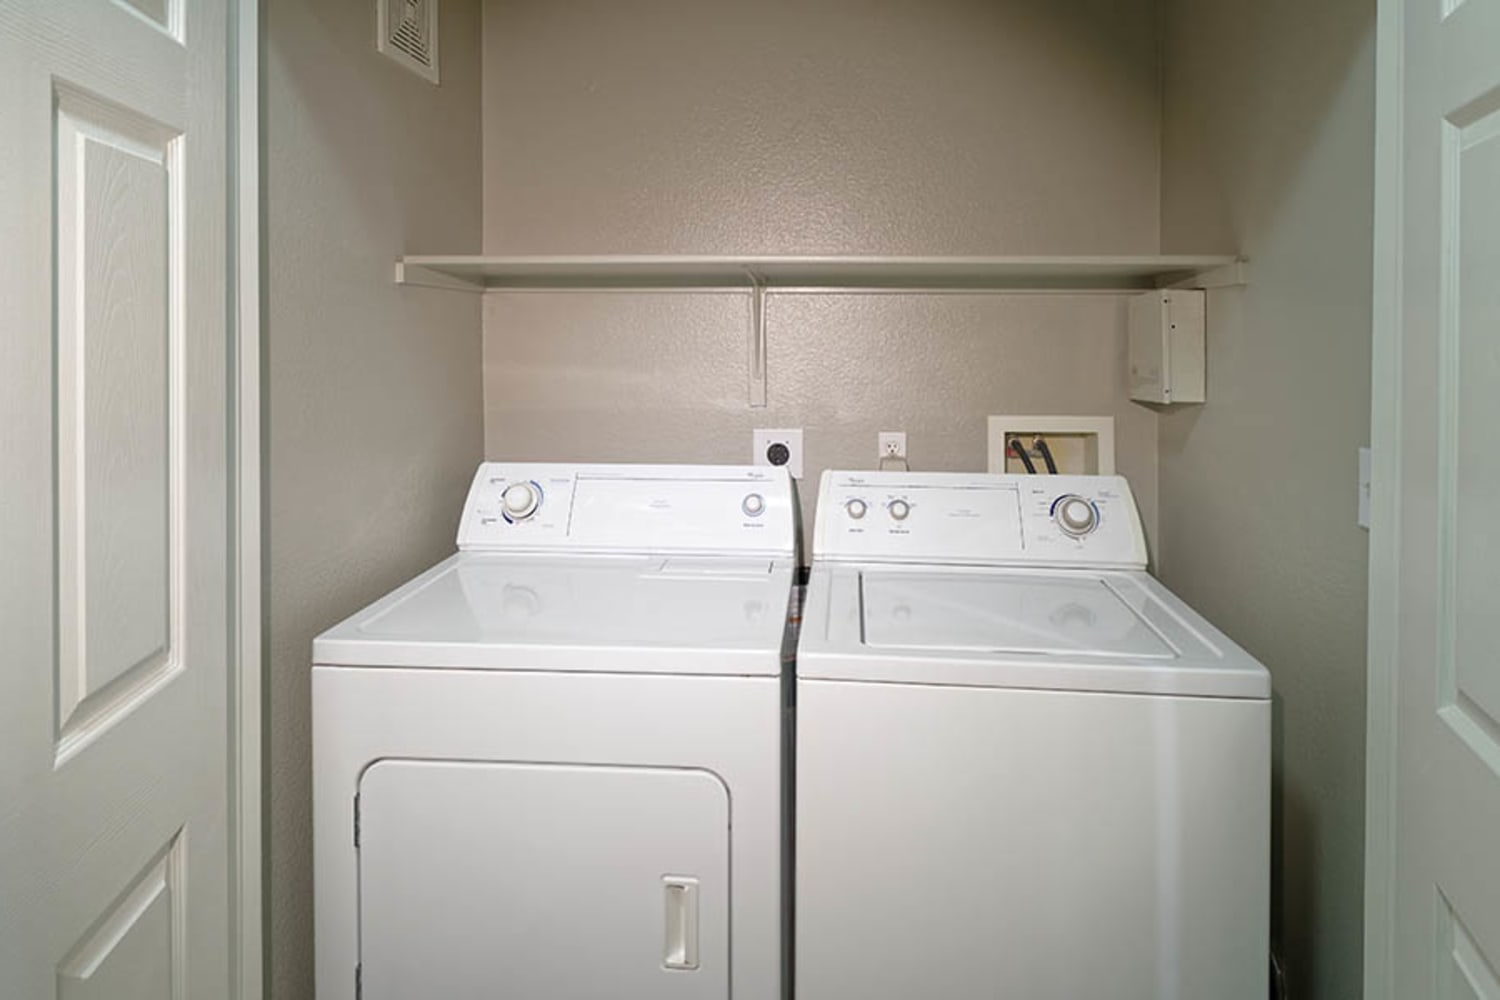 Camino Real offers in unit washers and dryers in Rancho Cucamonga, California